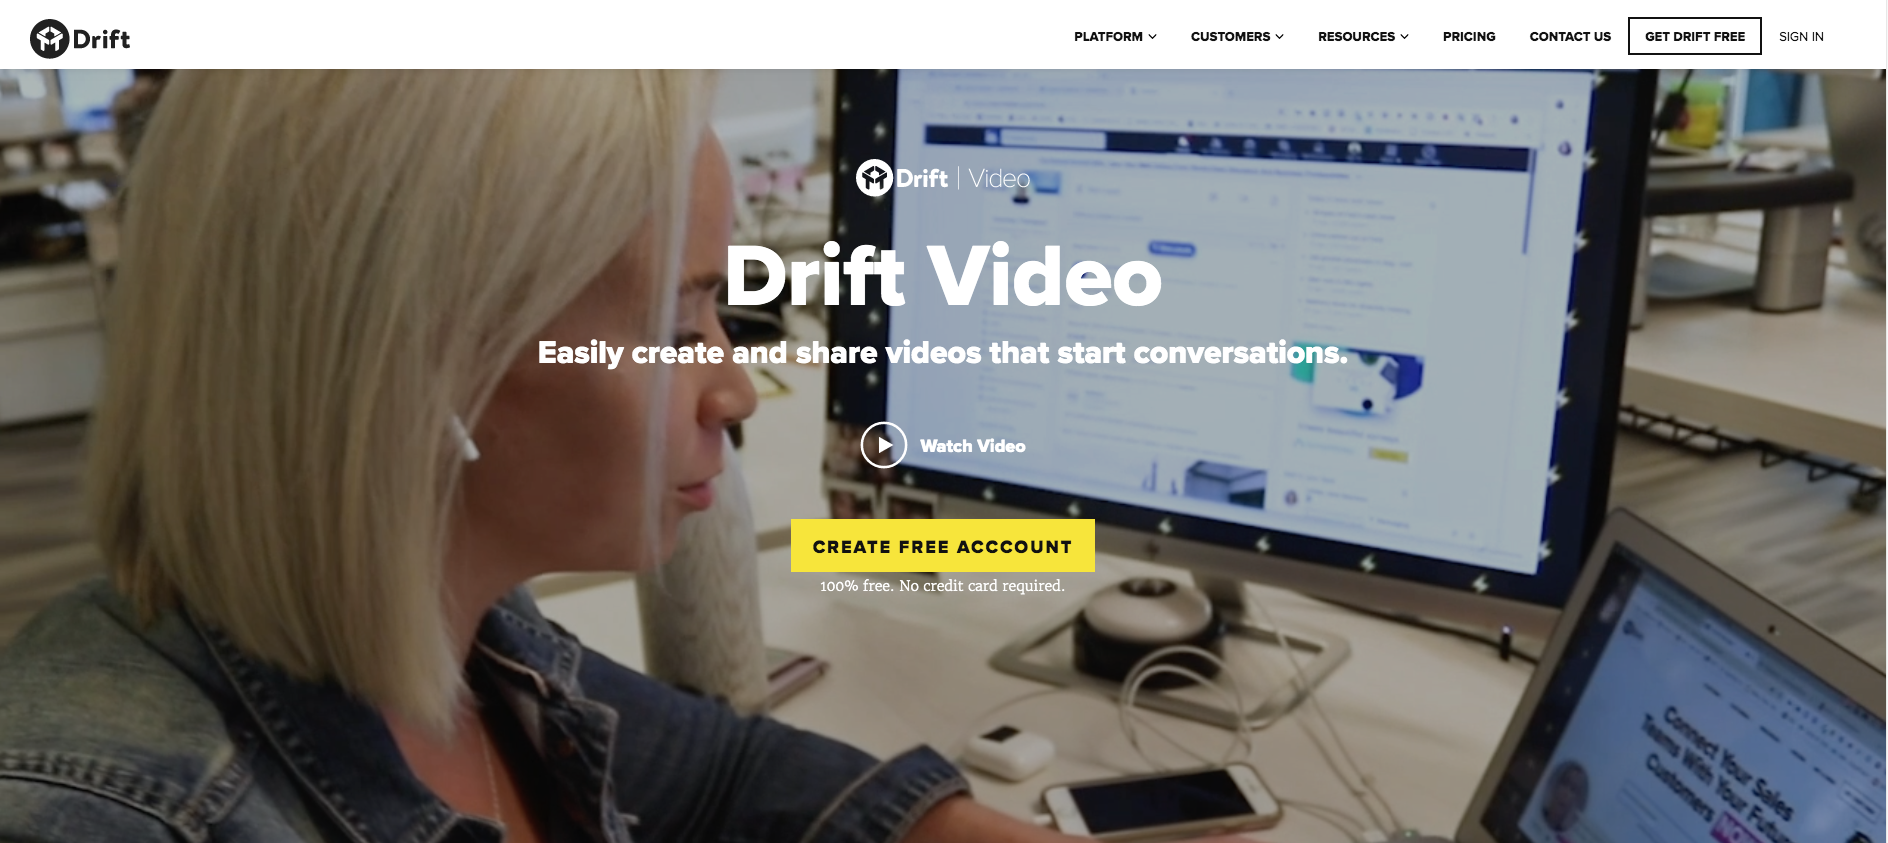 What You Need to Know About Drift Video According to Our Video Experts